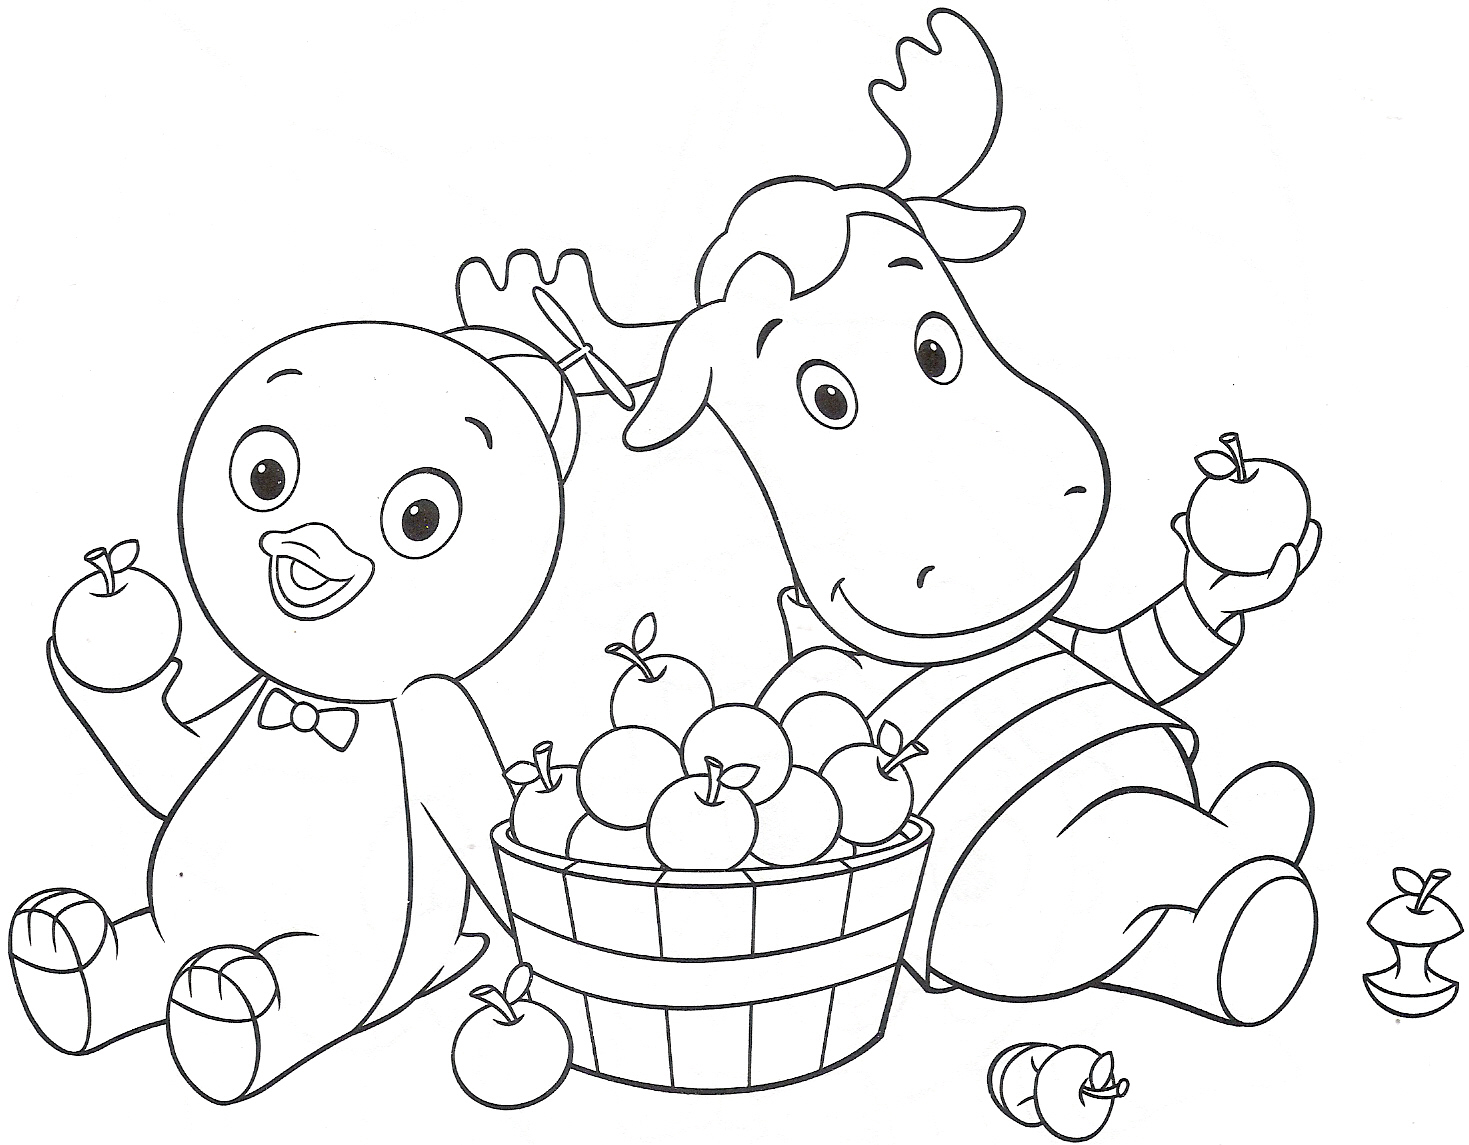 backyardigans coloring pages printable az for kids - Backyardigans Coloring Pages Print